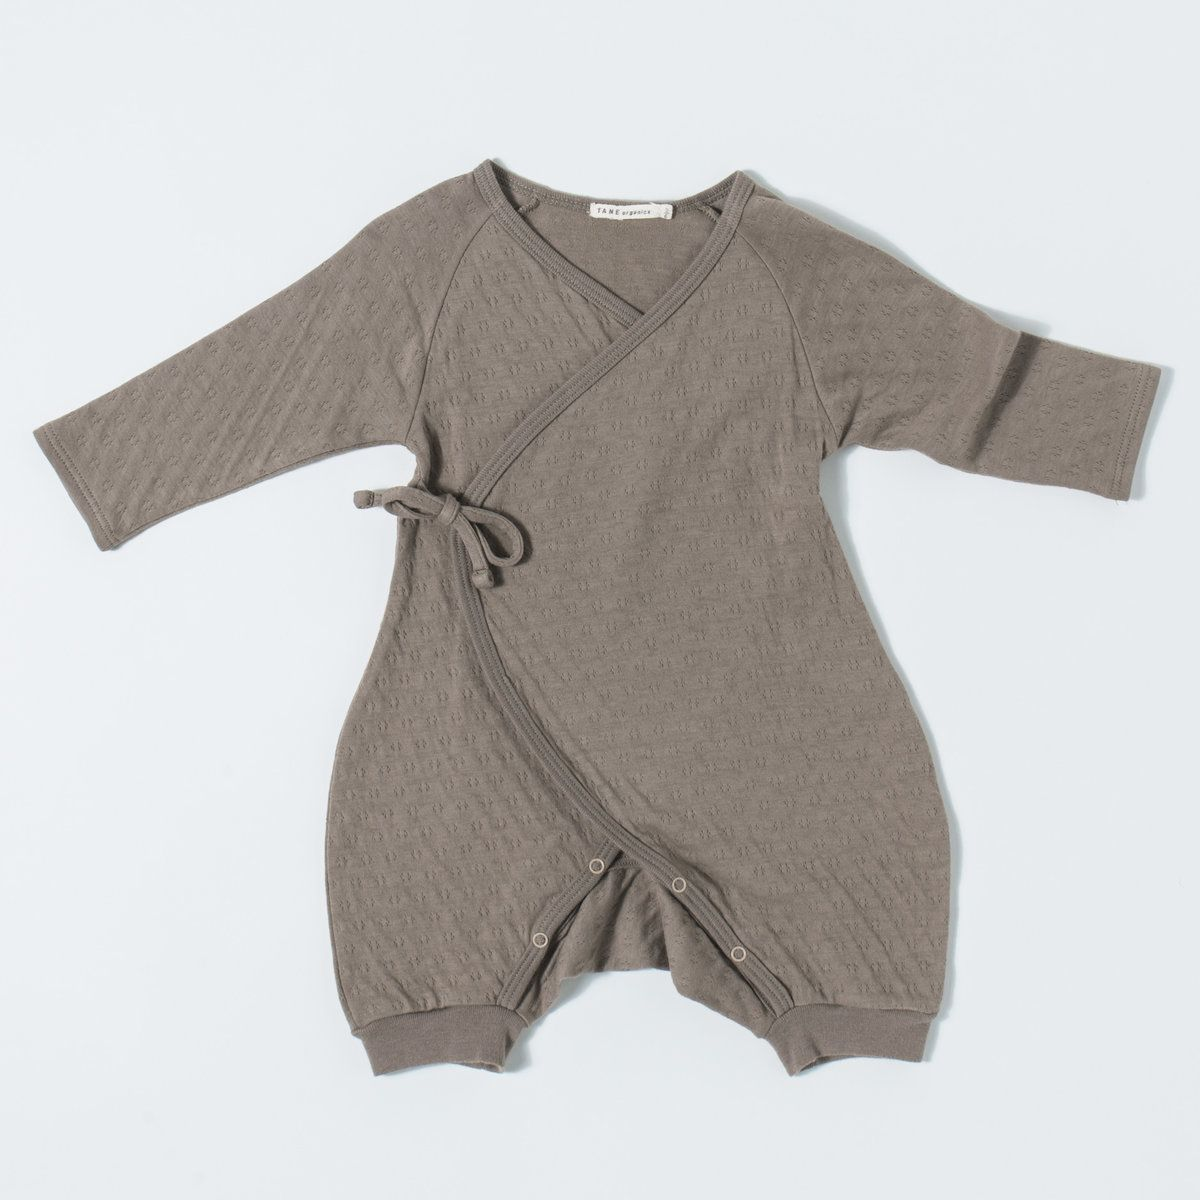 5a91d682c Luxurious Organic Infant and Baby Clothing: onesies : Pointelle Kimono  Onesie | Future Family | Baby kimono, Organic baby clothes, Baby sewing